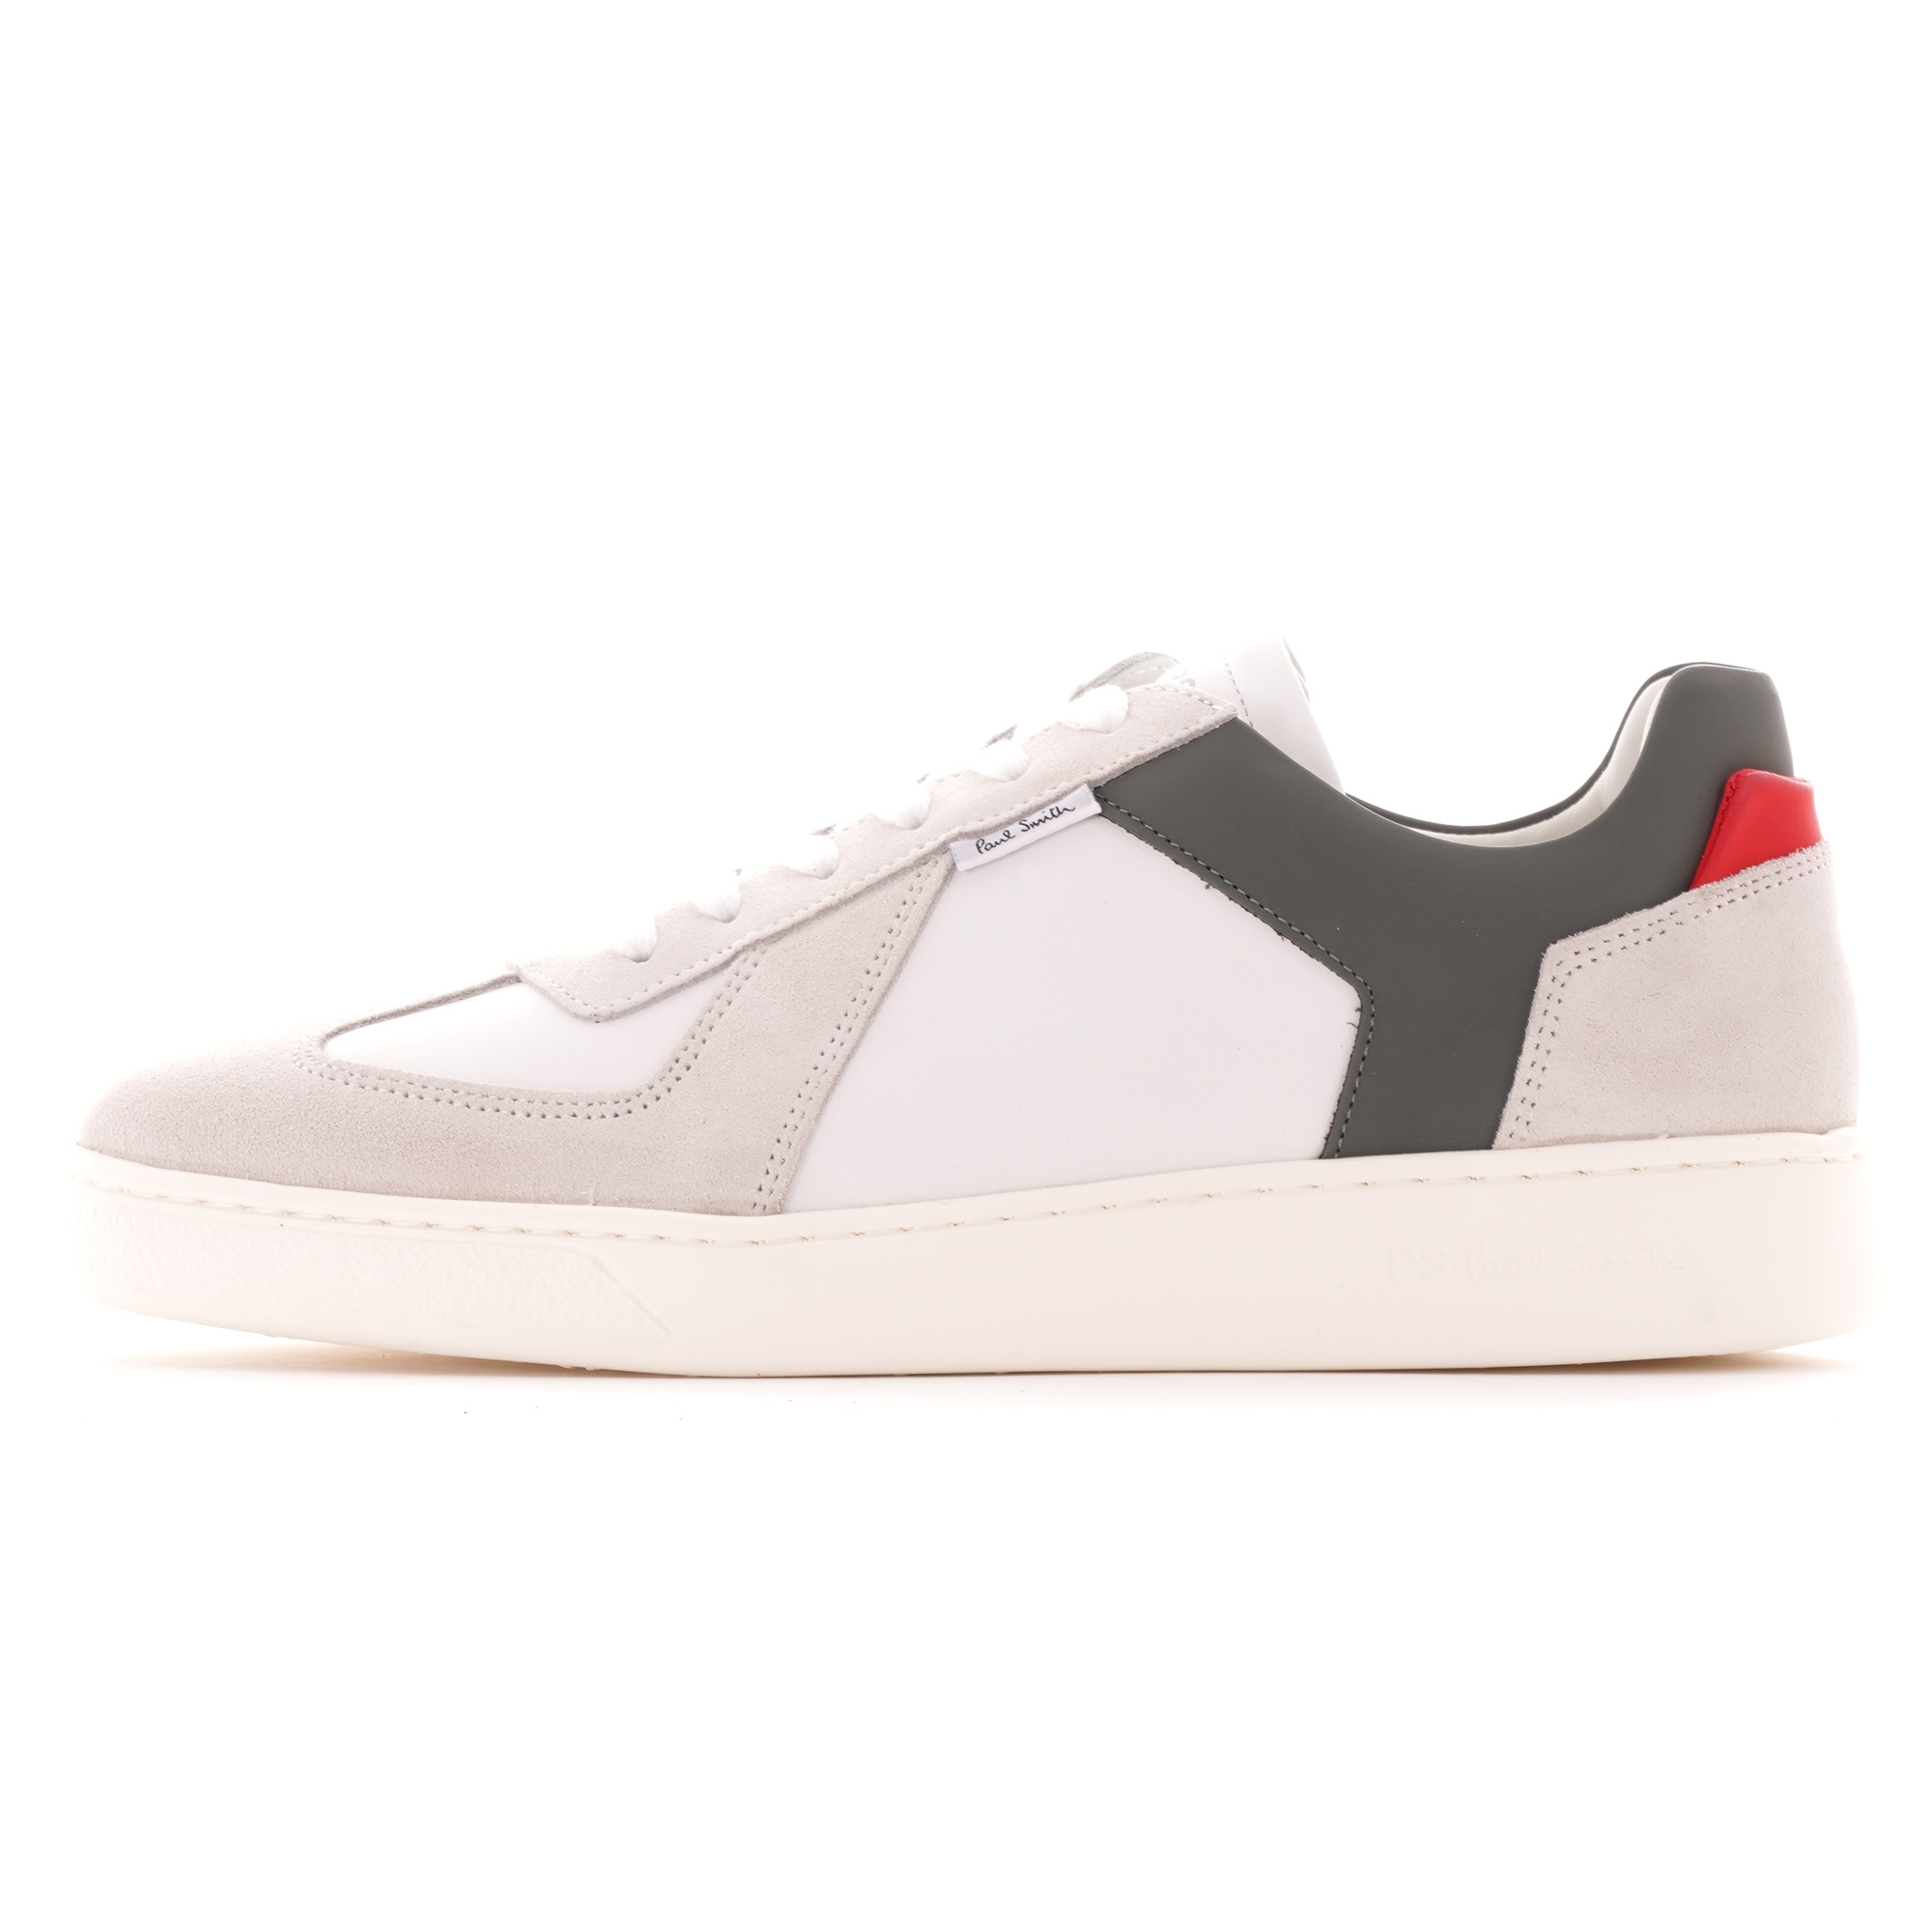 Image of Cross Sneakers - White